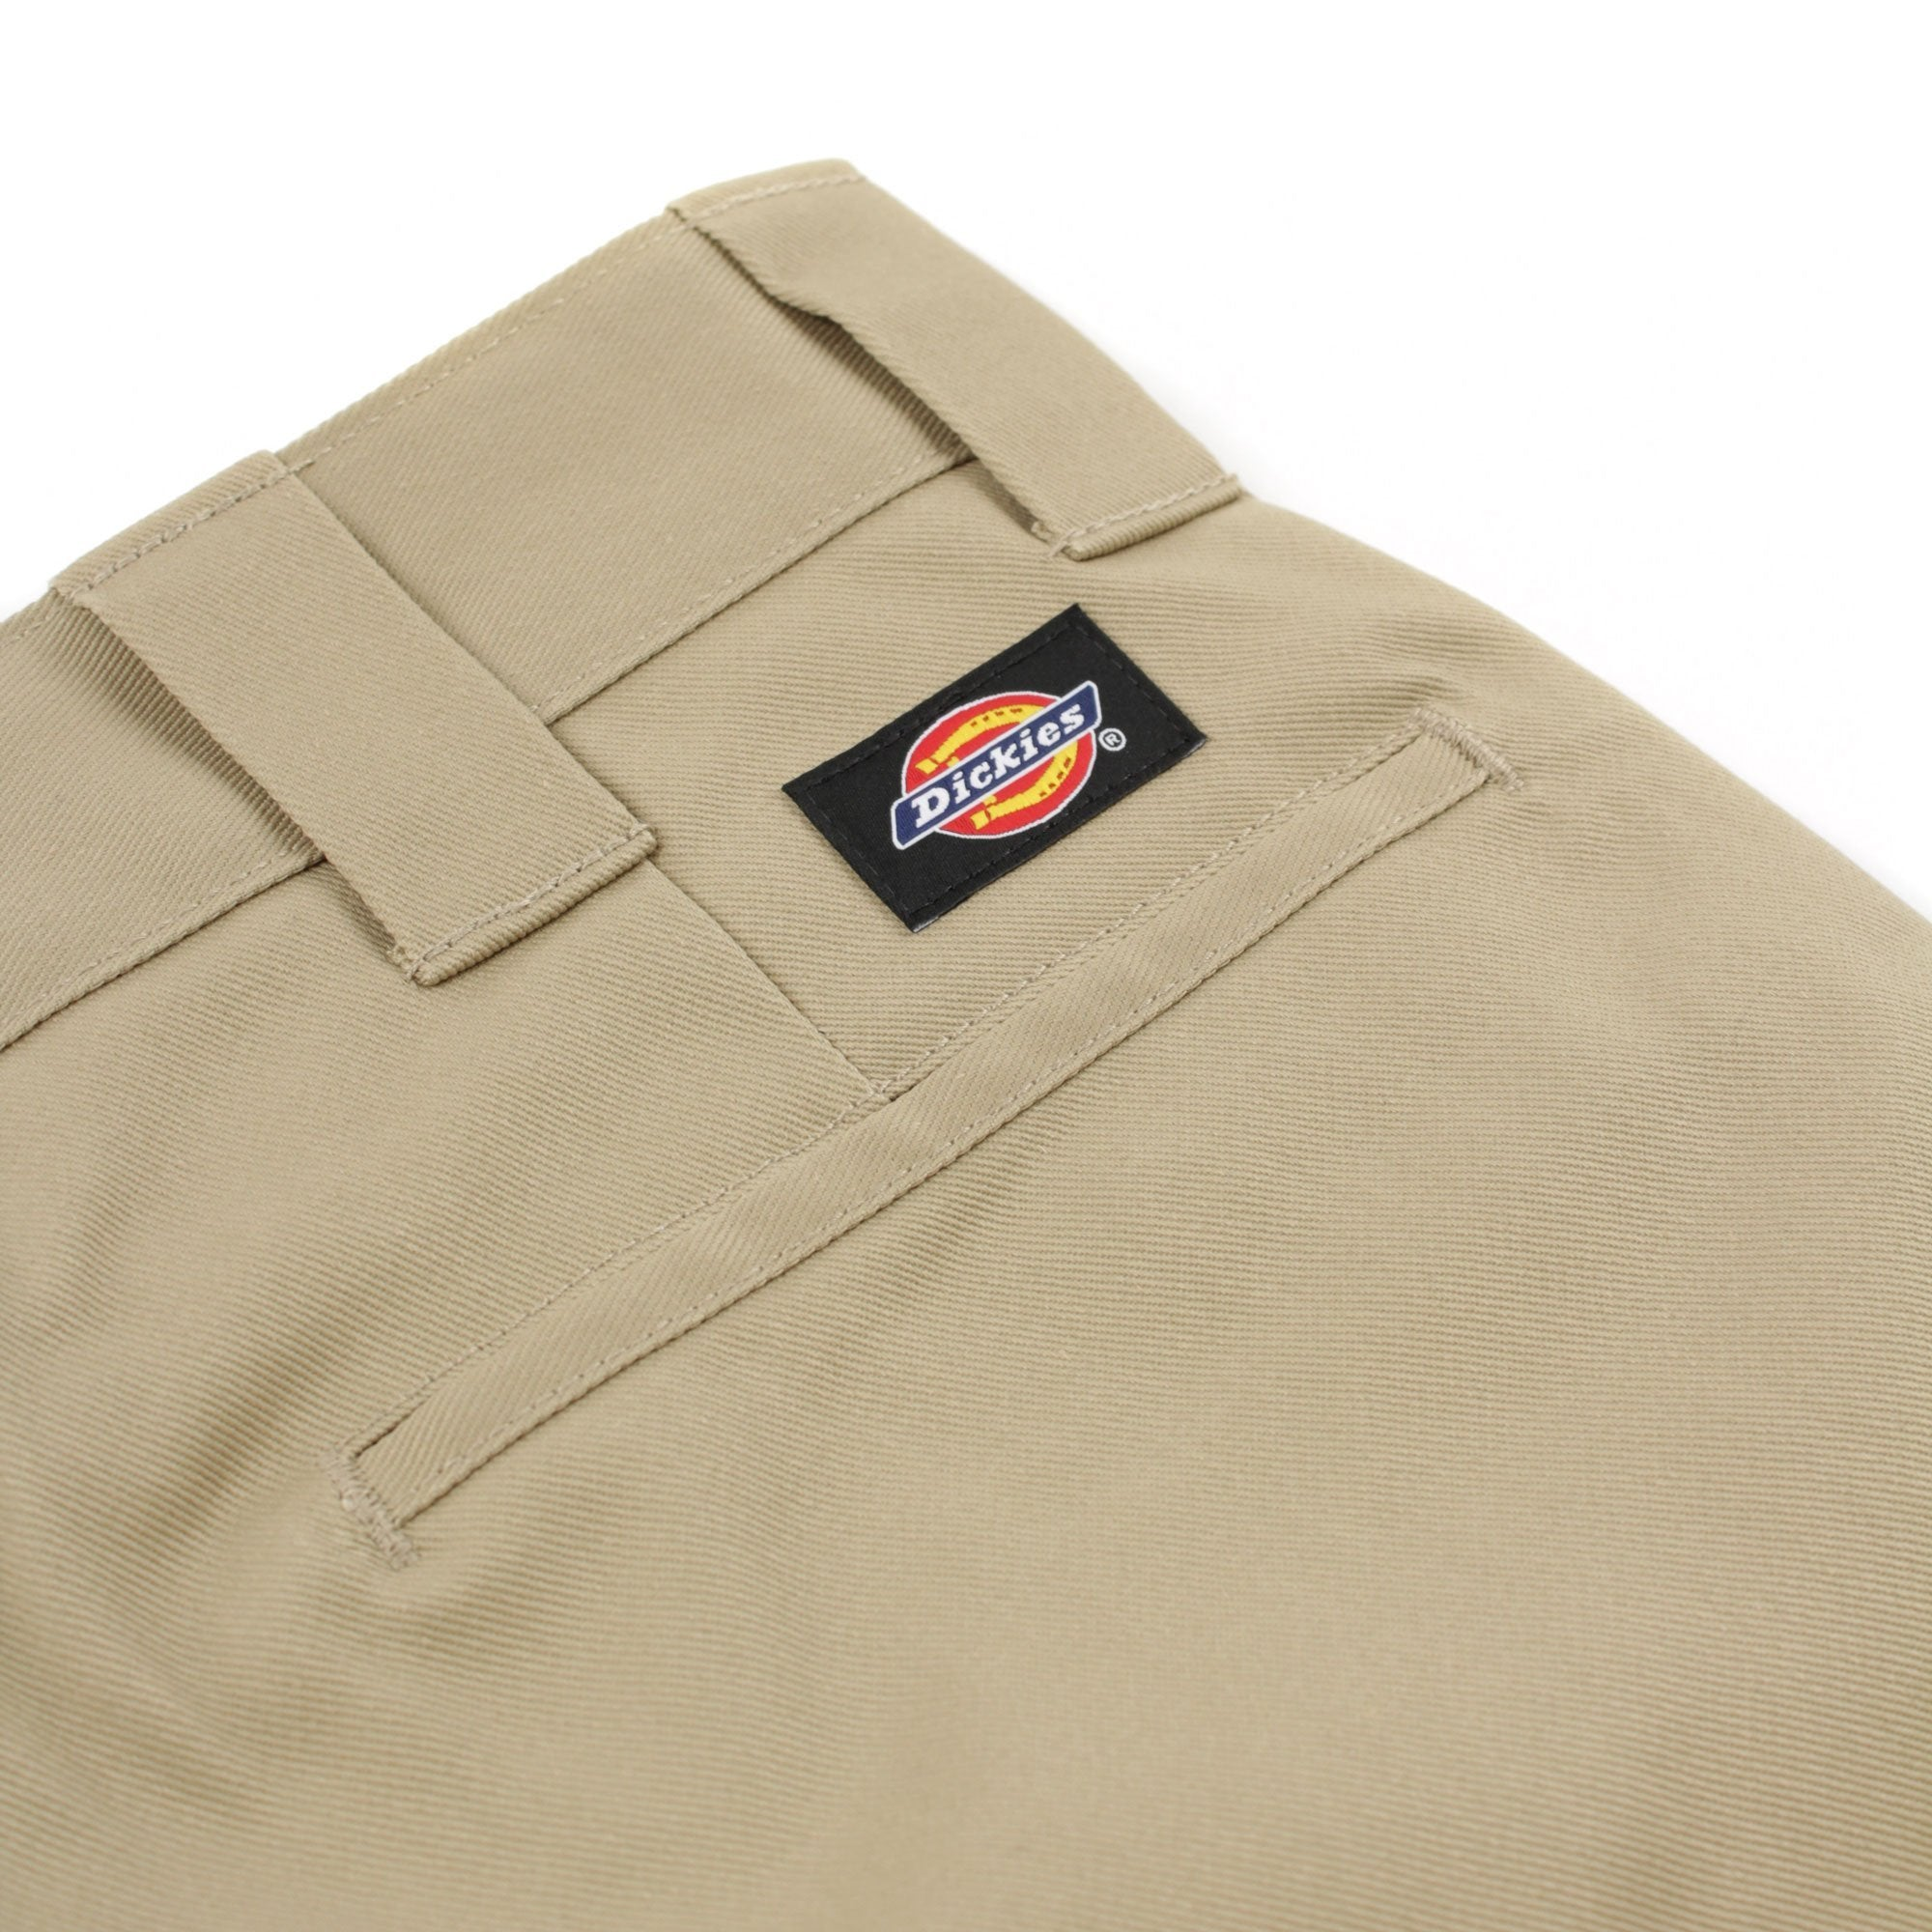 Dickies 873 Pants Product Photo #2